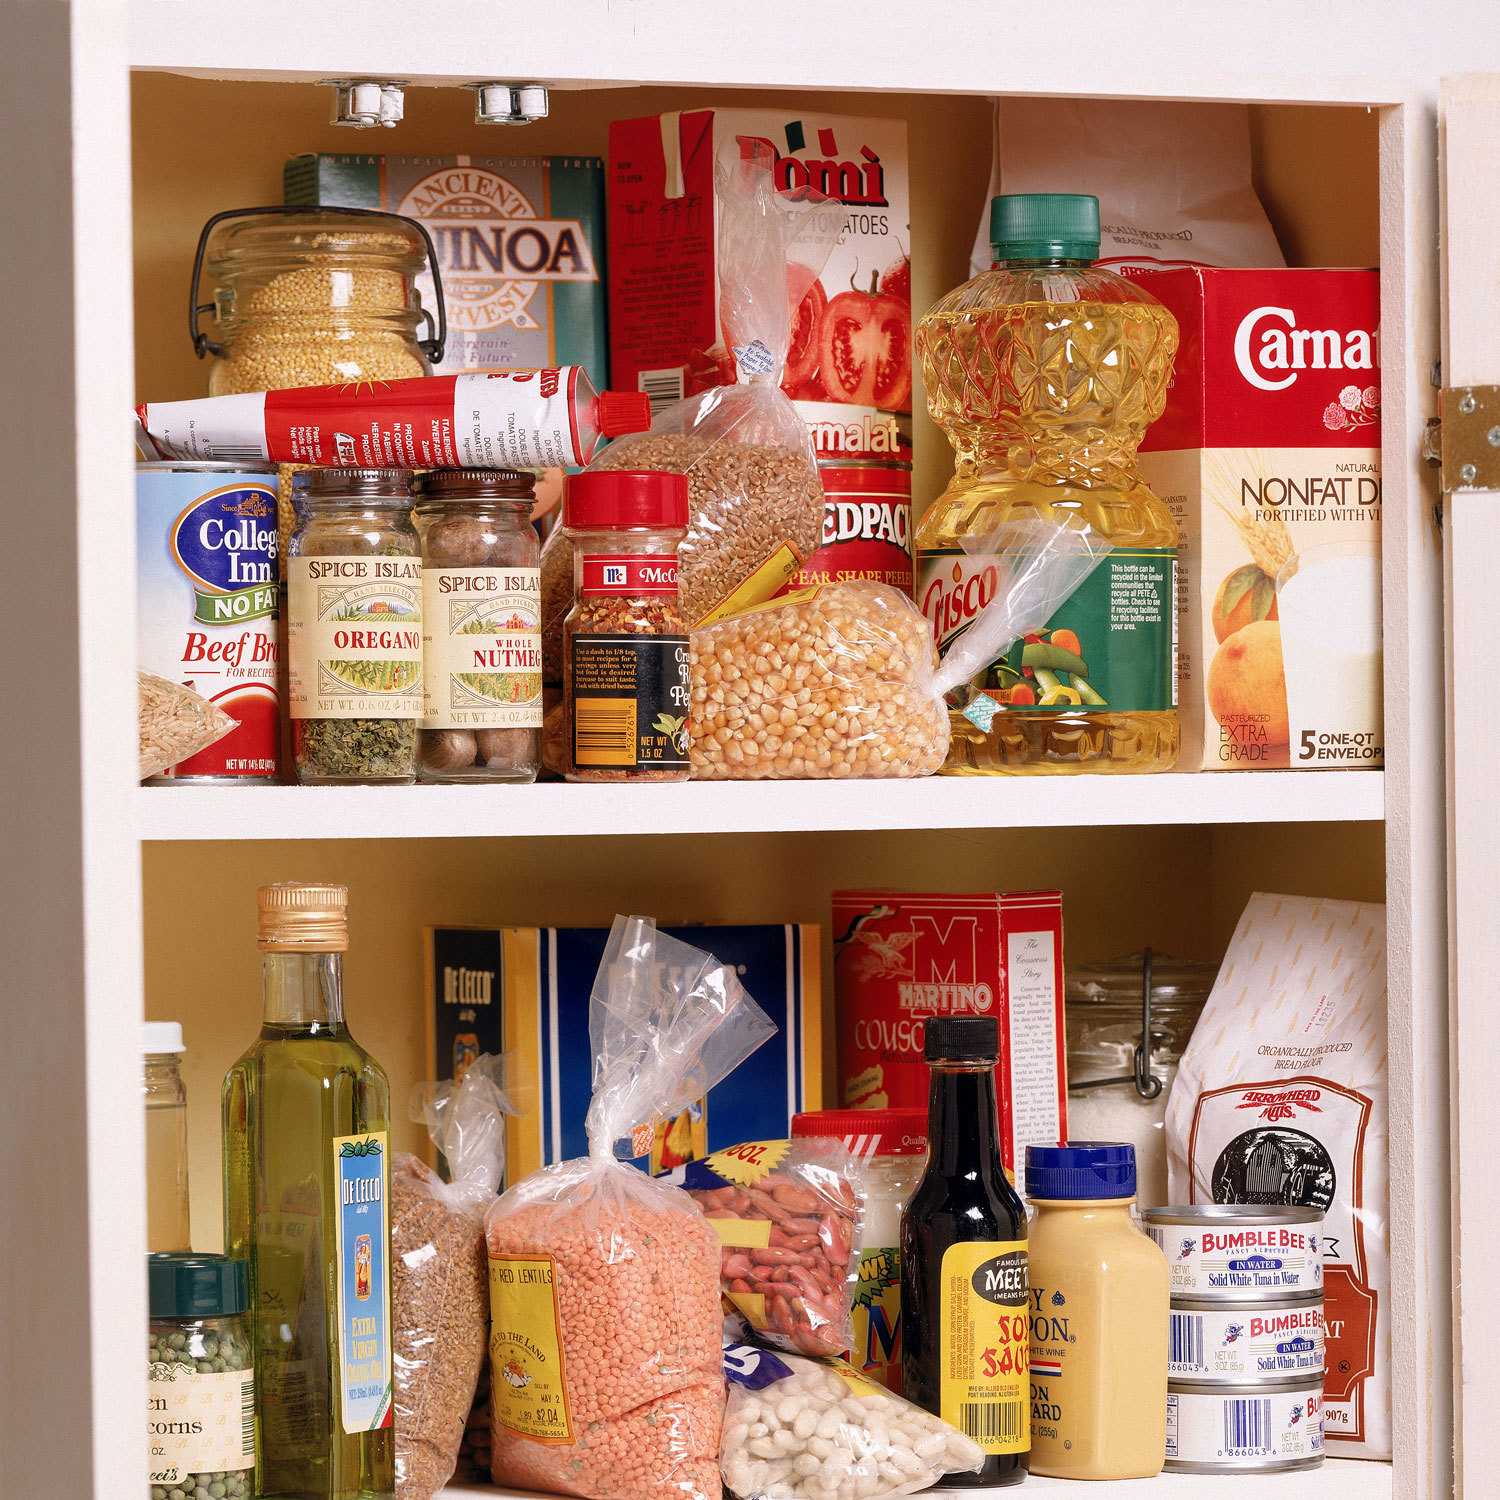 pantry items that are non-perishable